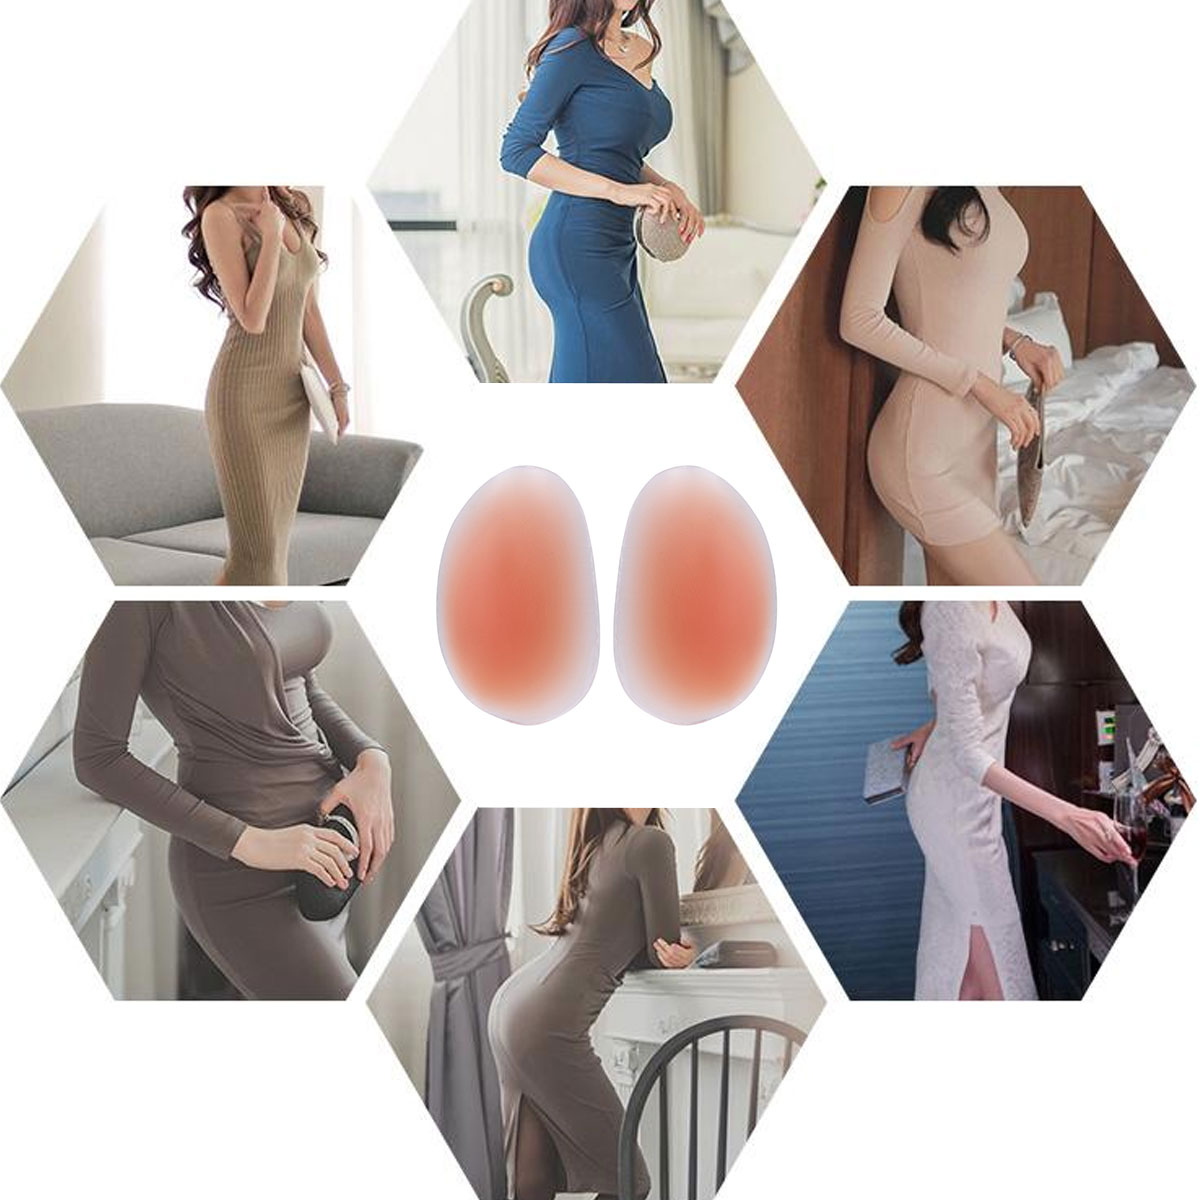 Image 2 - TiaoBug 1 Pair Buttocks Enhancers Inserts Comfortable Removable Push Up Sexy Bikini Briefs Panties Women Silicone Fake Butt Pads-in Control Panties from Underwear & Sleepwears